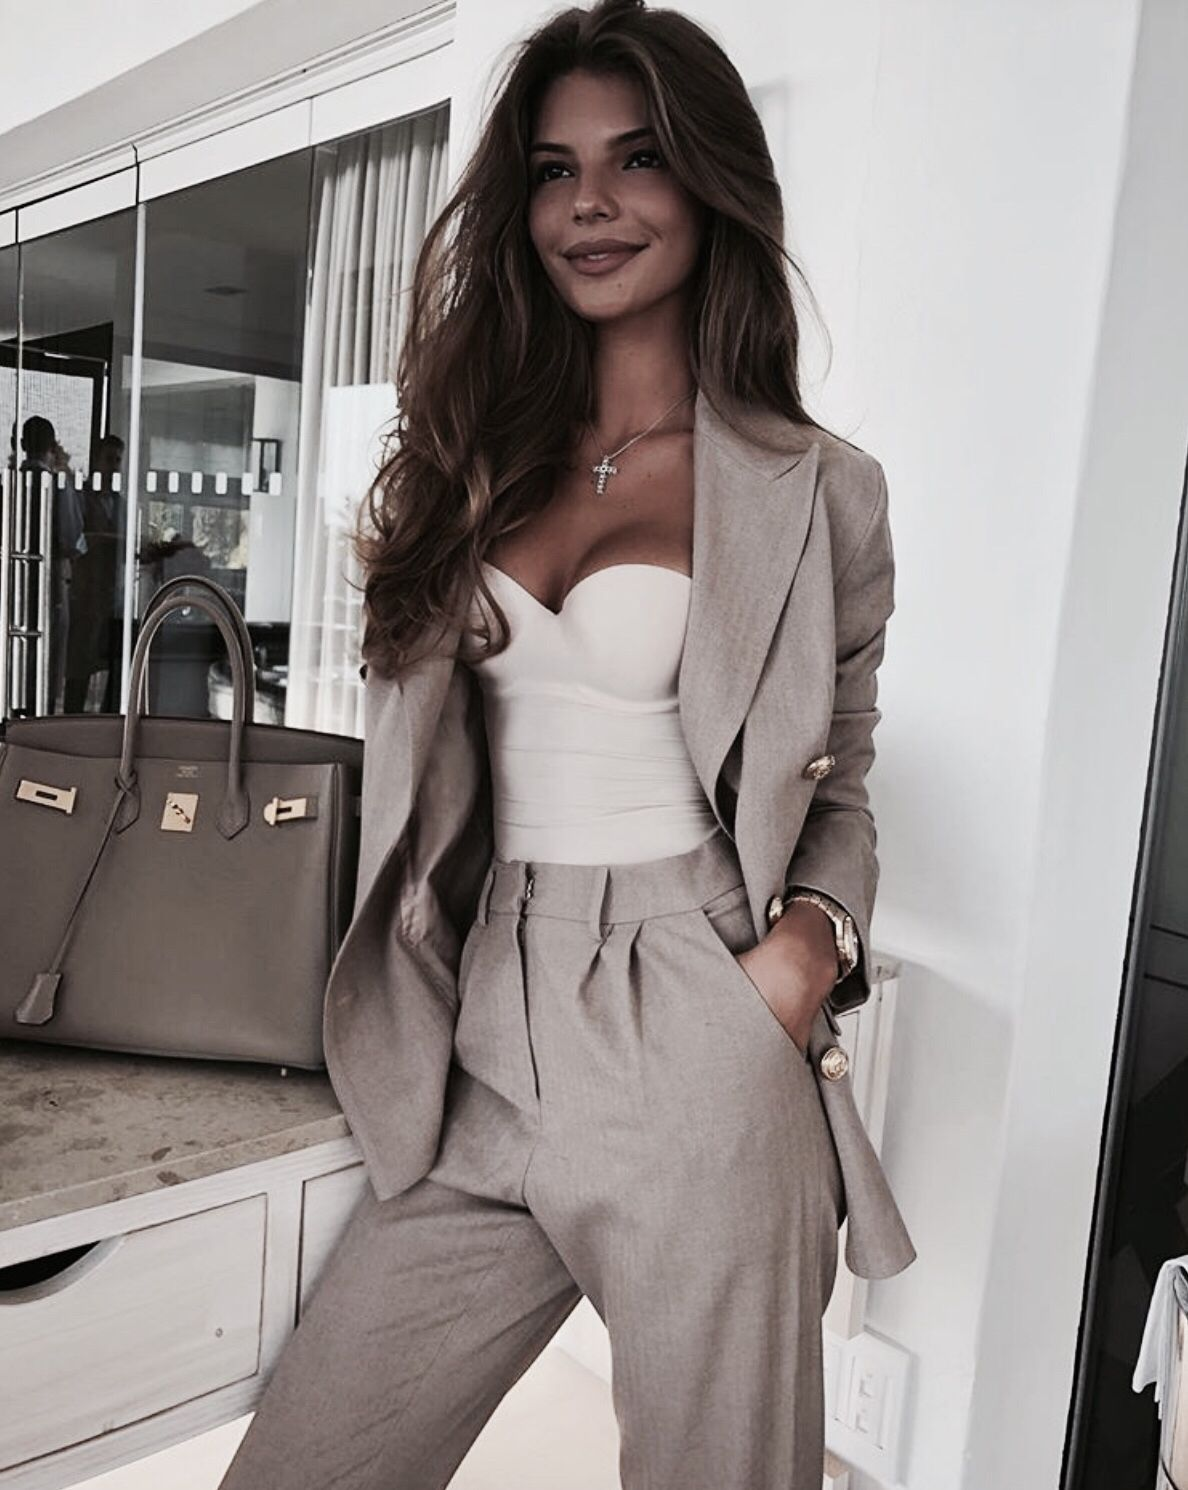 Pin von obsessionsss auf winter outfits | Outfit ideen